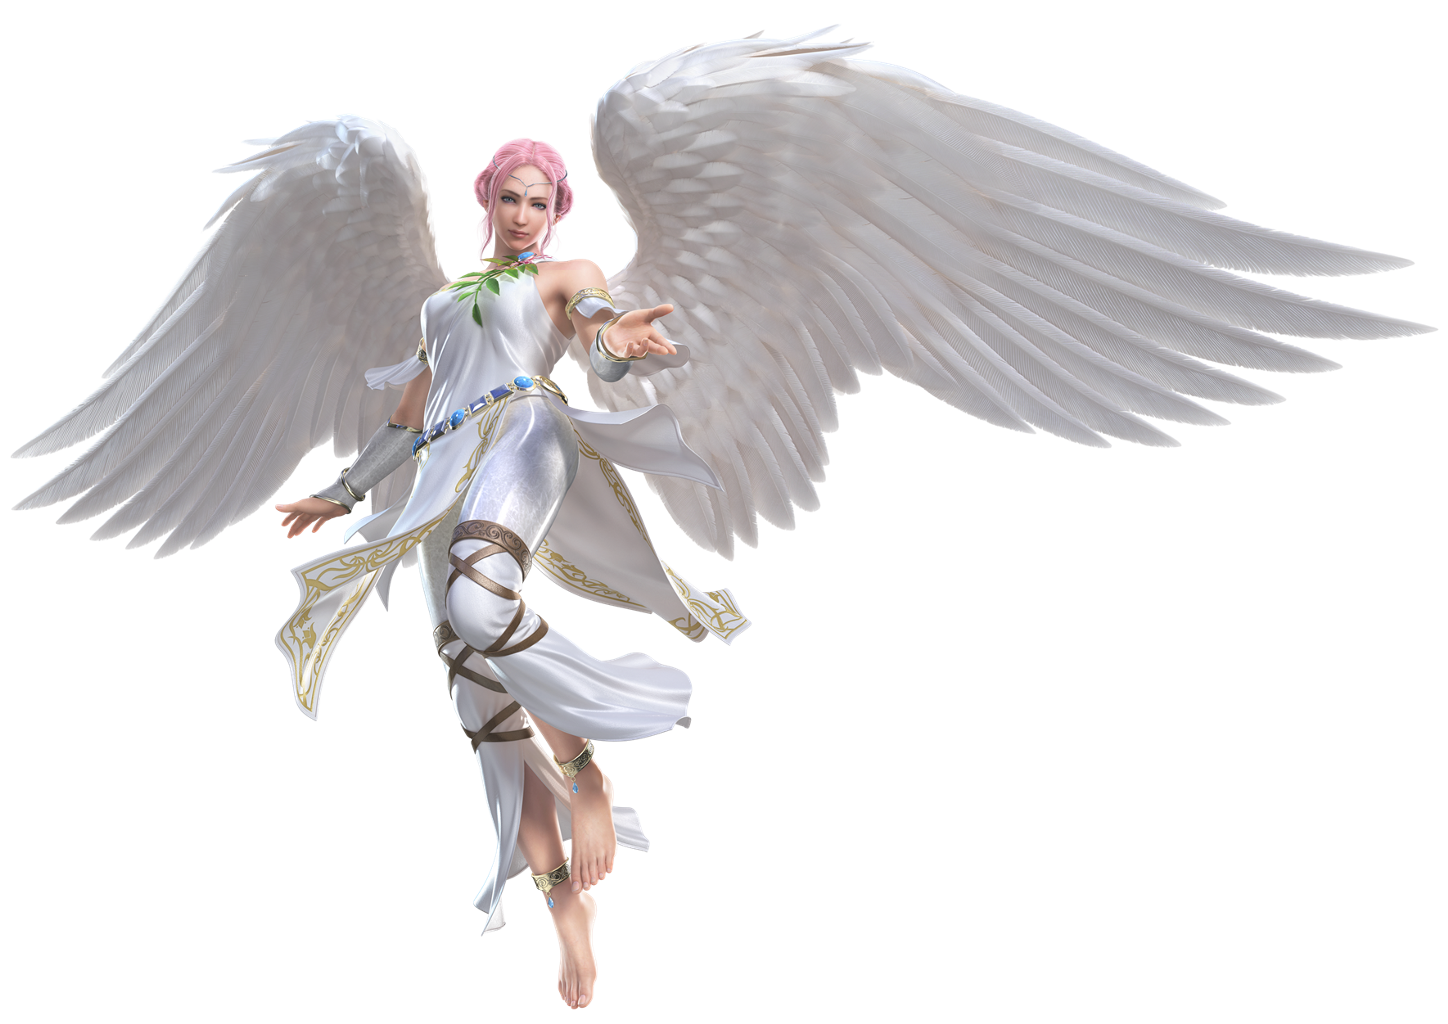 Angels fantasy report abuse. Heaven clipart angel